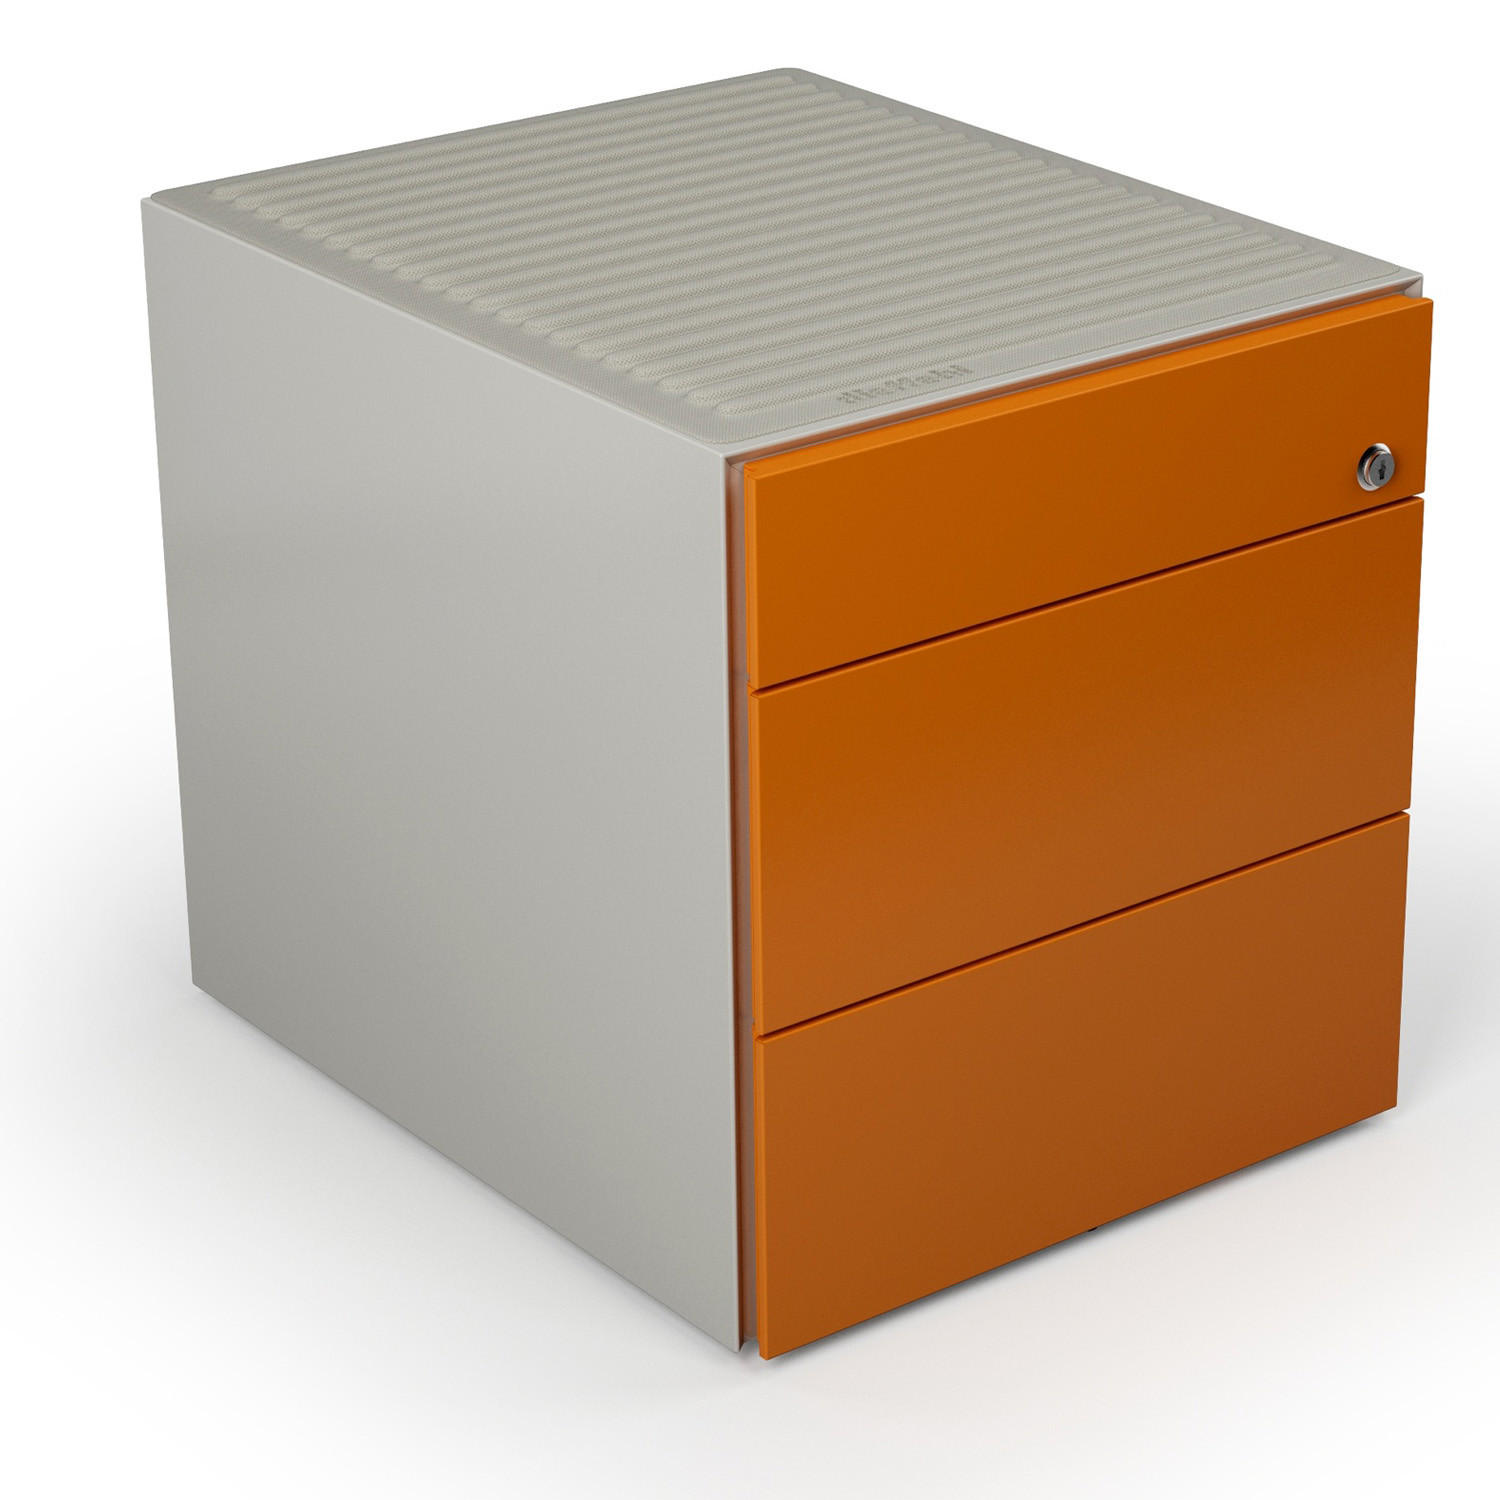 Mia Ped Pedestal 2 drawers + 1 stationery drawer